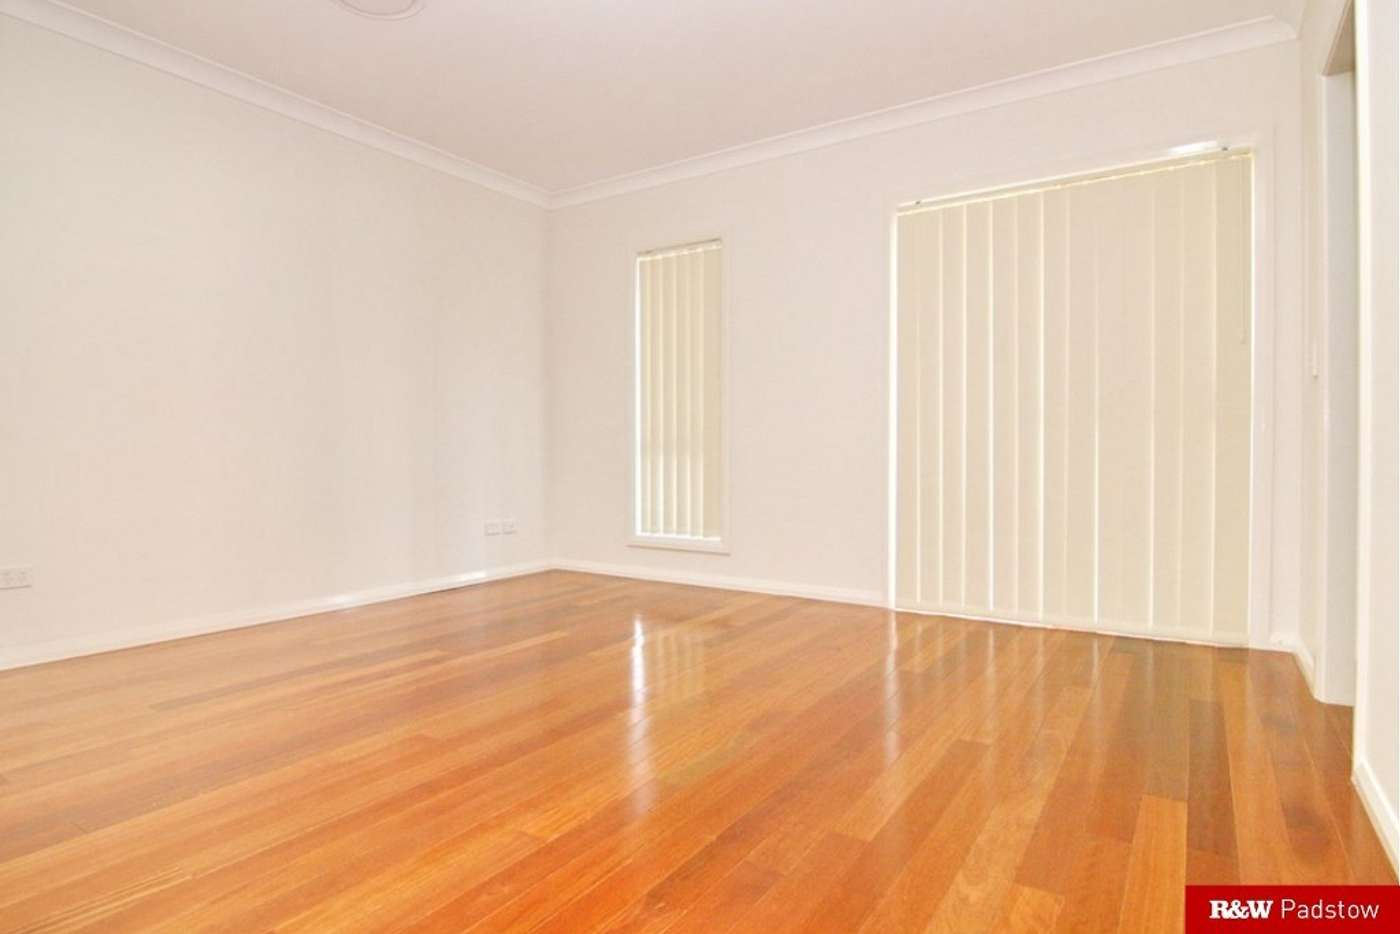 Seventh view of Homely house listing, 8A Prosser Avenue, Padstow NSW 2211